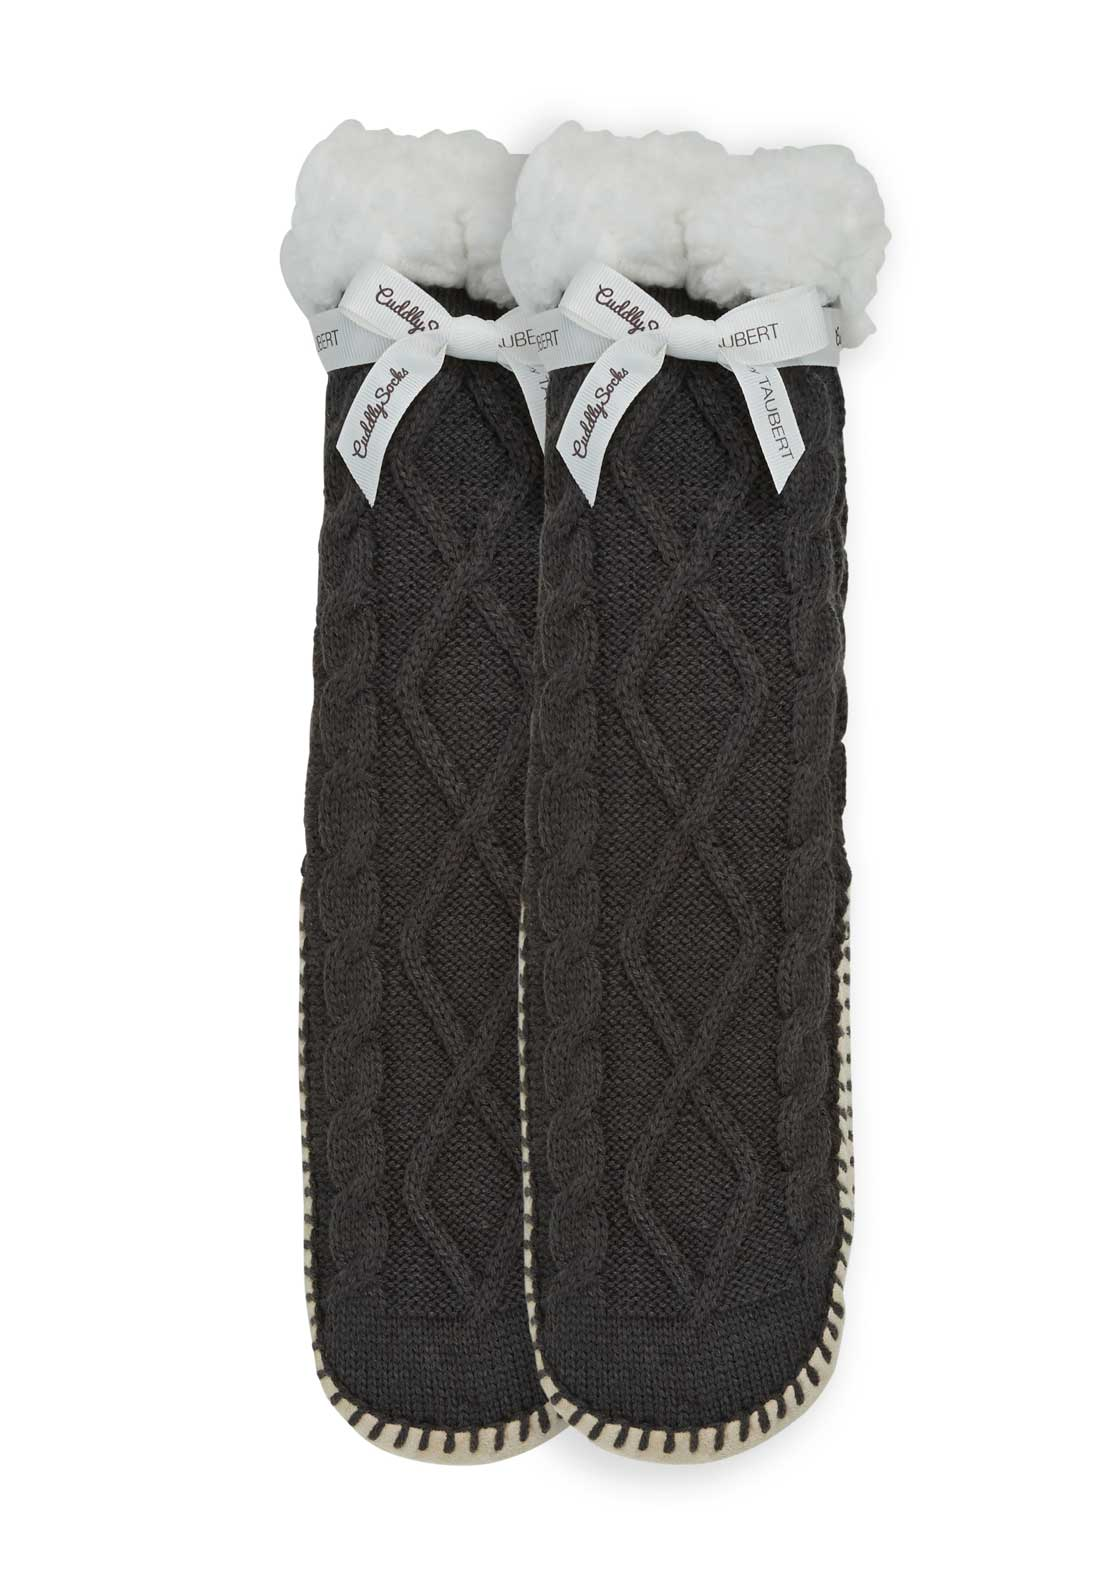 Taubert Cable Knit Slipper Socks, Charcoal